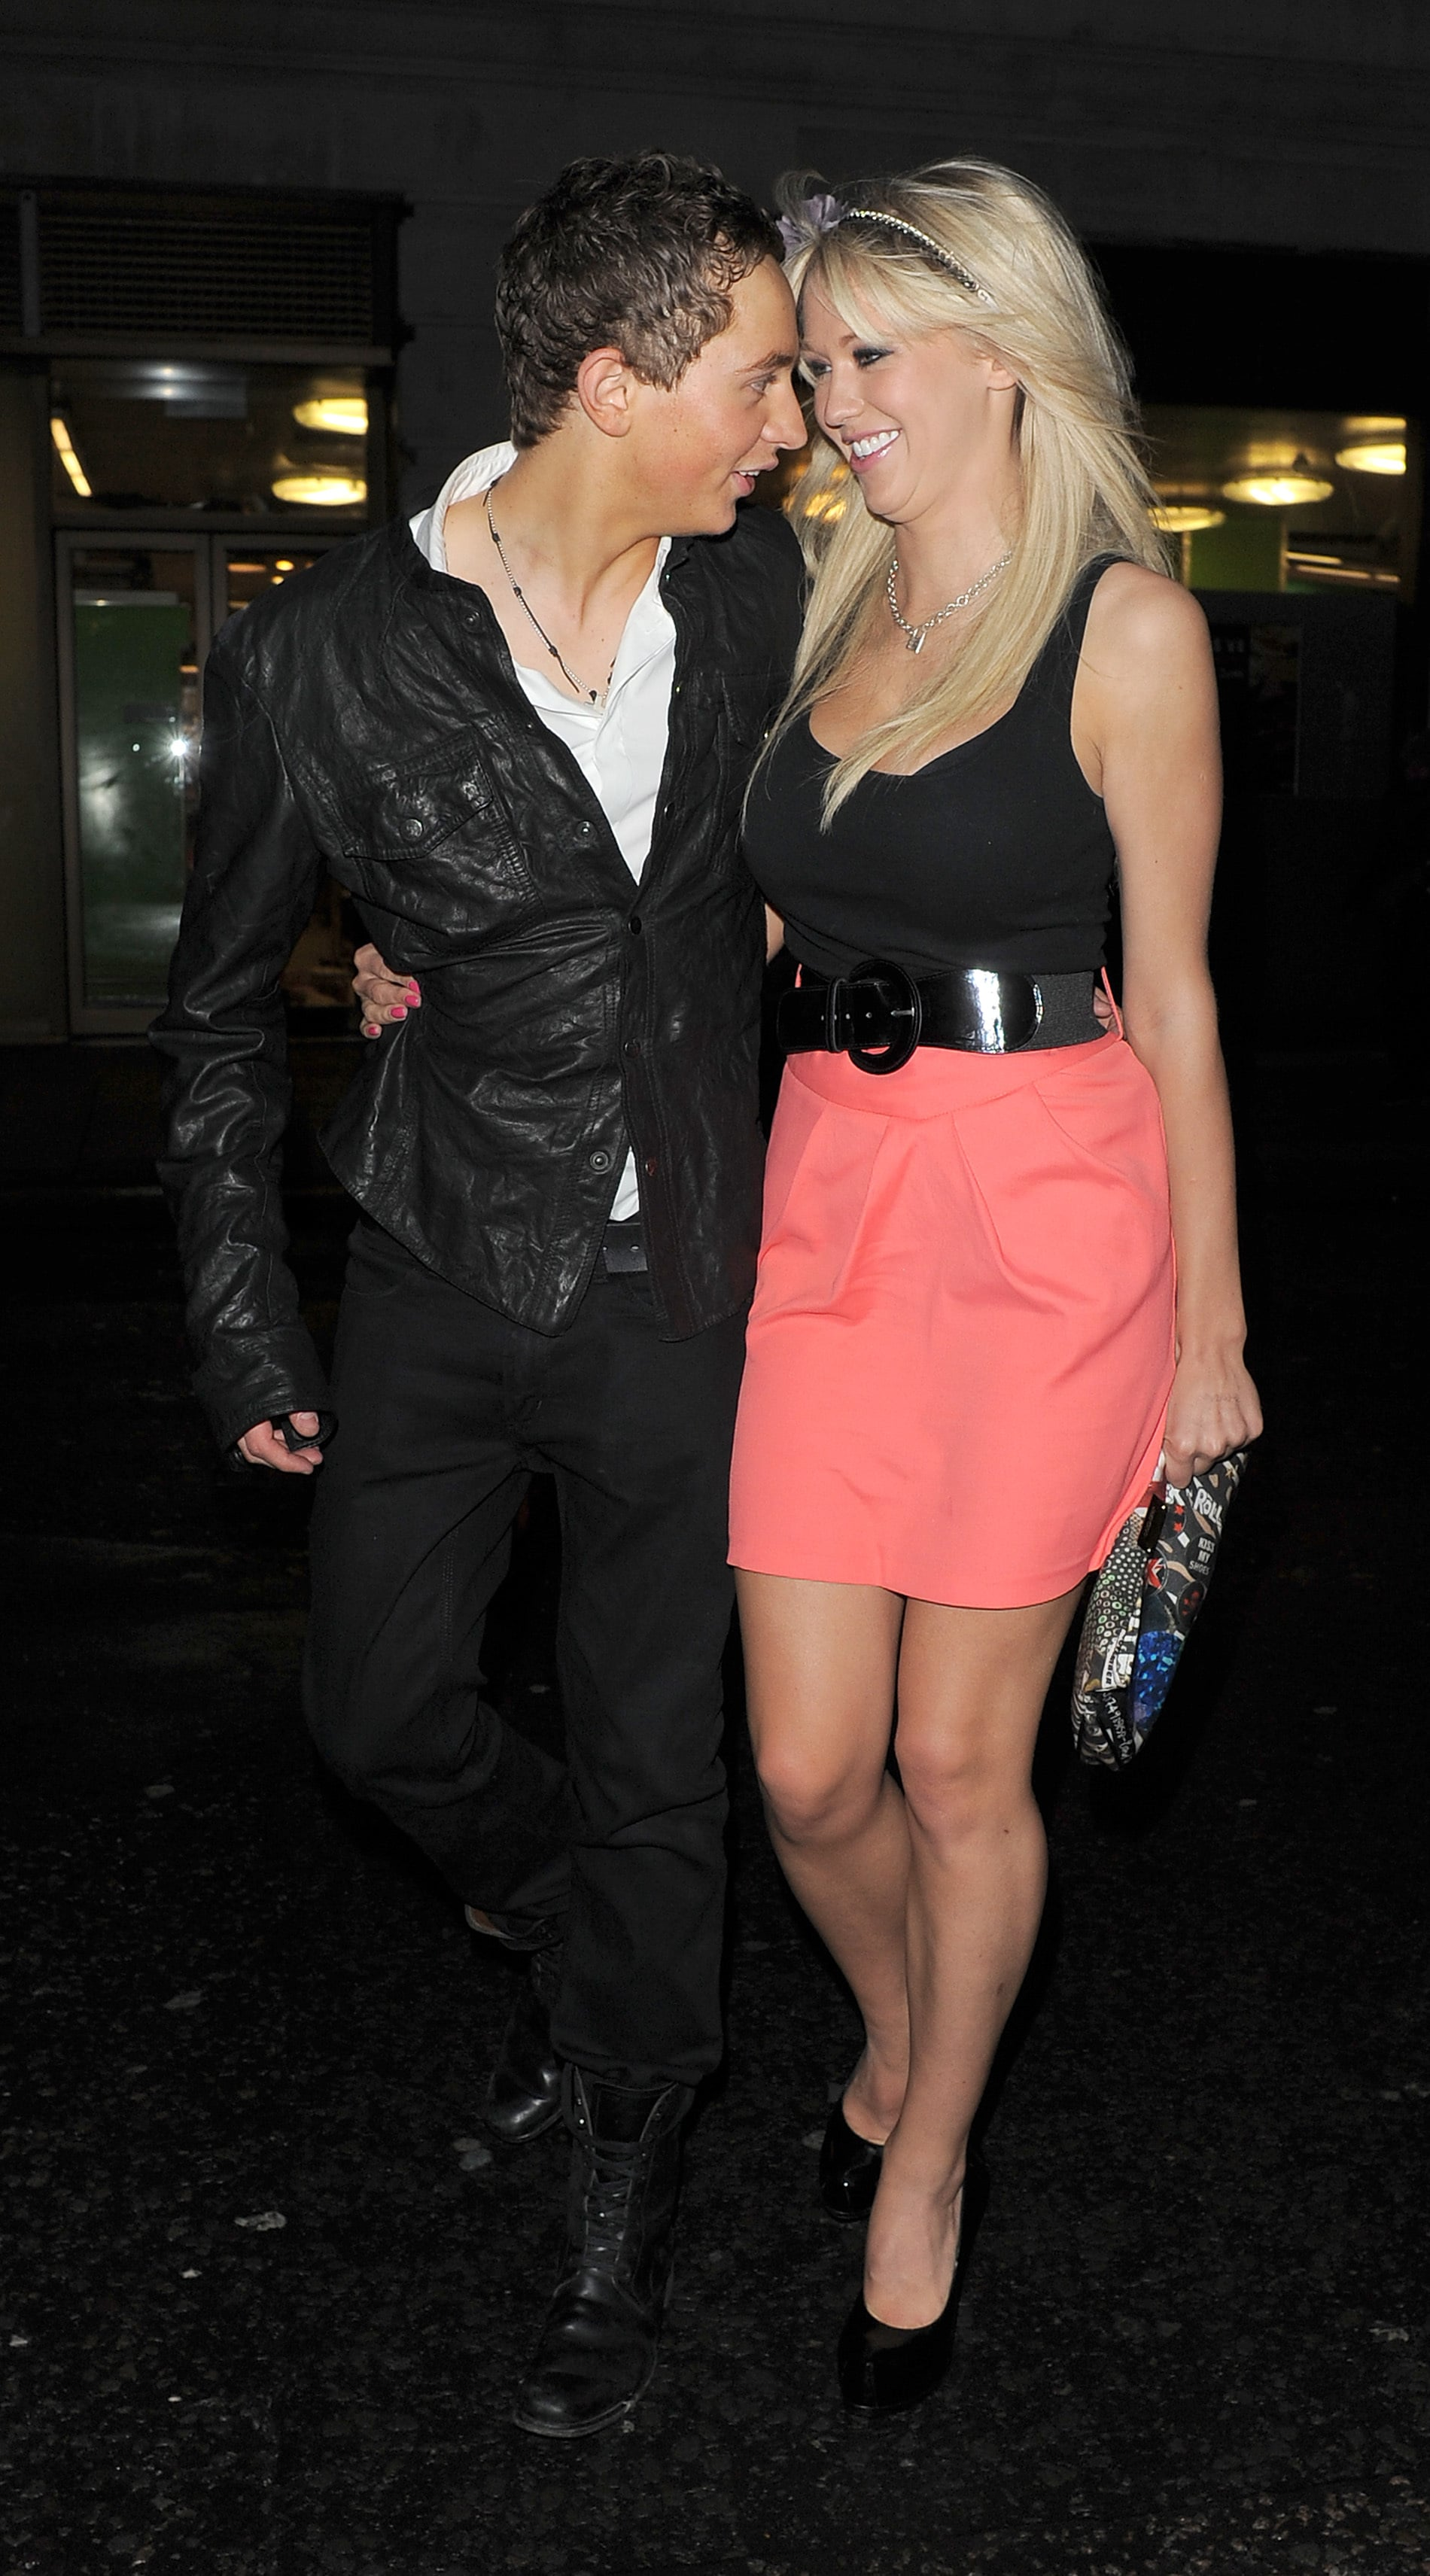 Photos Of Big Brother 10 Sophie Reade Holding Hands With